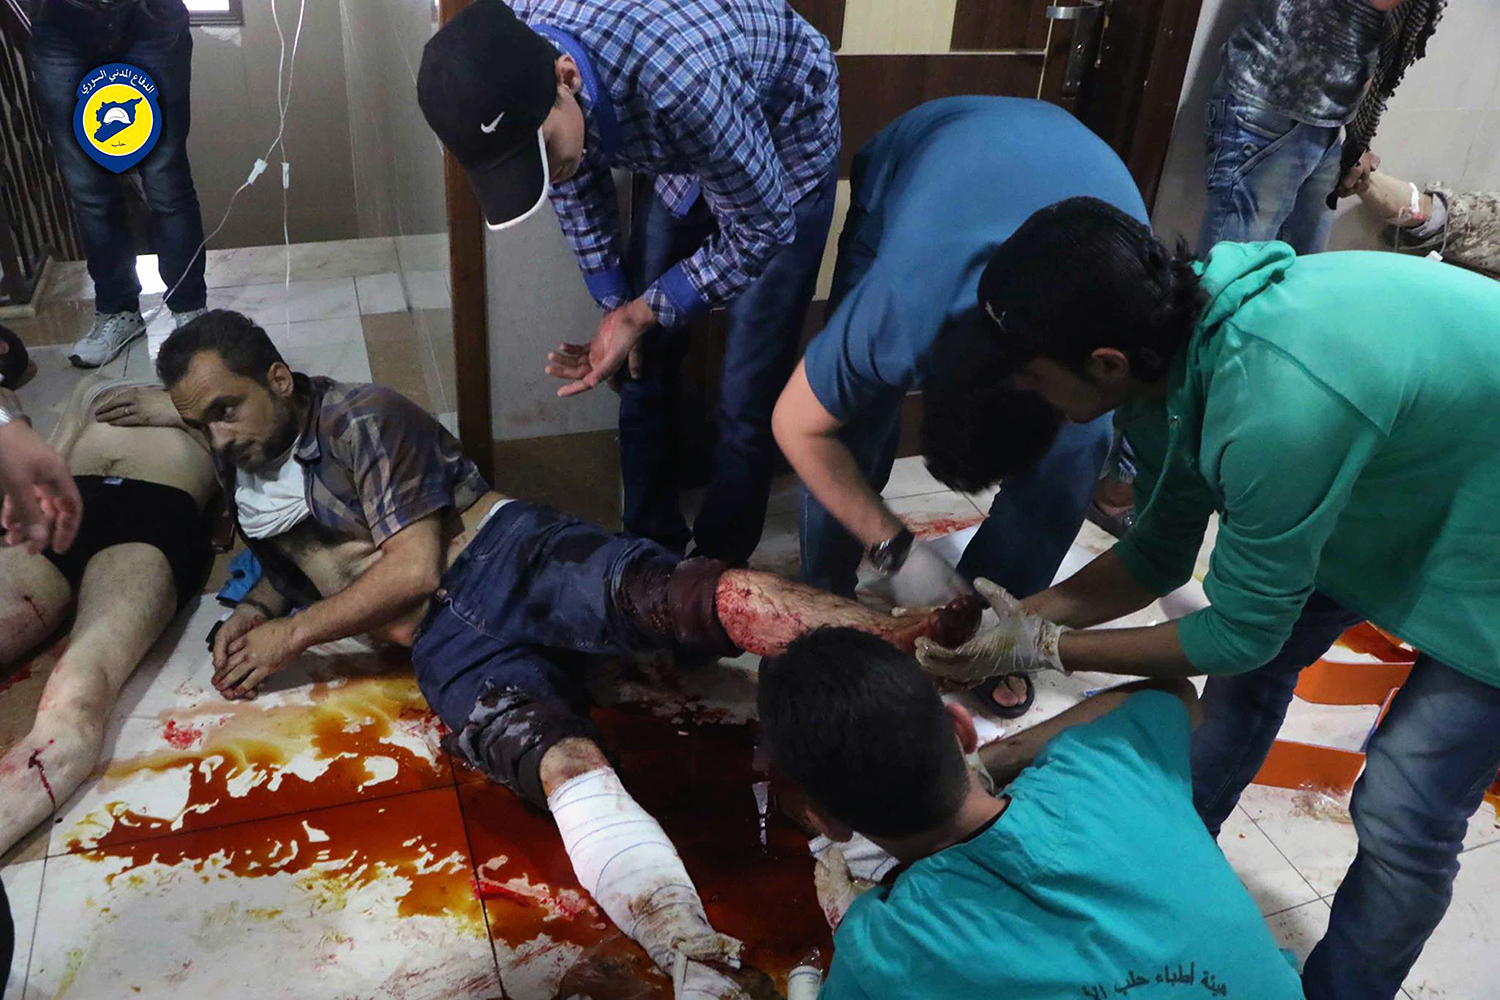 "This photo provided by the Syrian Civil Defense group known as the White Helmets, shows victims of airstrikes receiving treatment on the floor of a clinic, in Aleppo, Syria, Sunday, Sept. 25, 2016. A broad coalition of Syrian rebels denounced international negotiations for peace as ""meaningless"" on Sunday, as the U.N. Security Council prepared to convene an emergency meeting about the spiraling violence in Syria. (Syrian Civil Defense White Helmets via AP)"